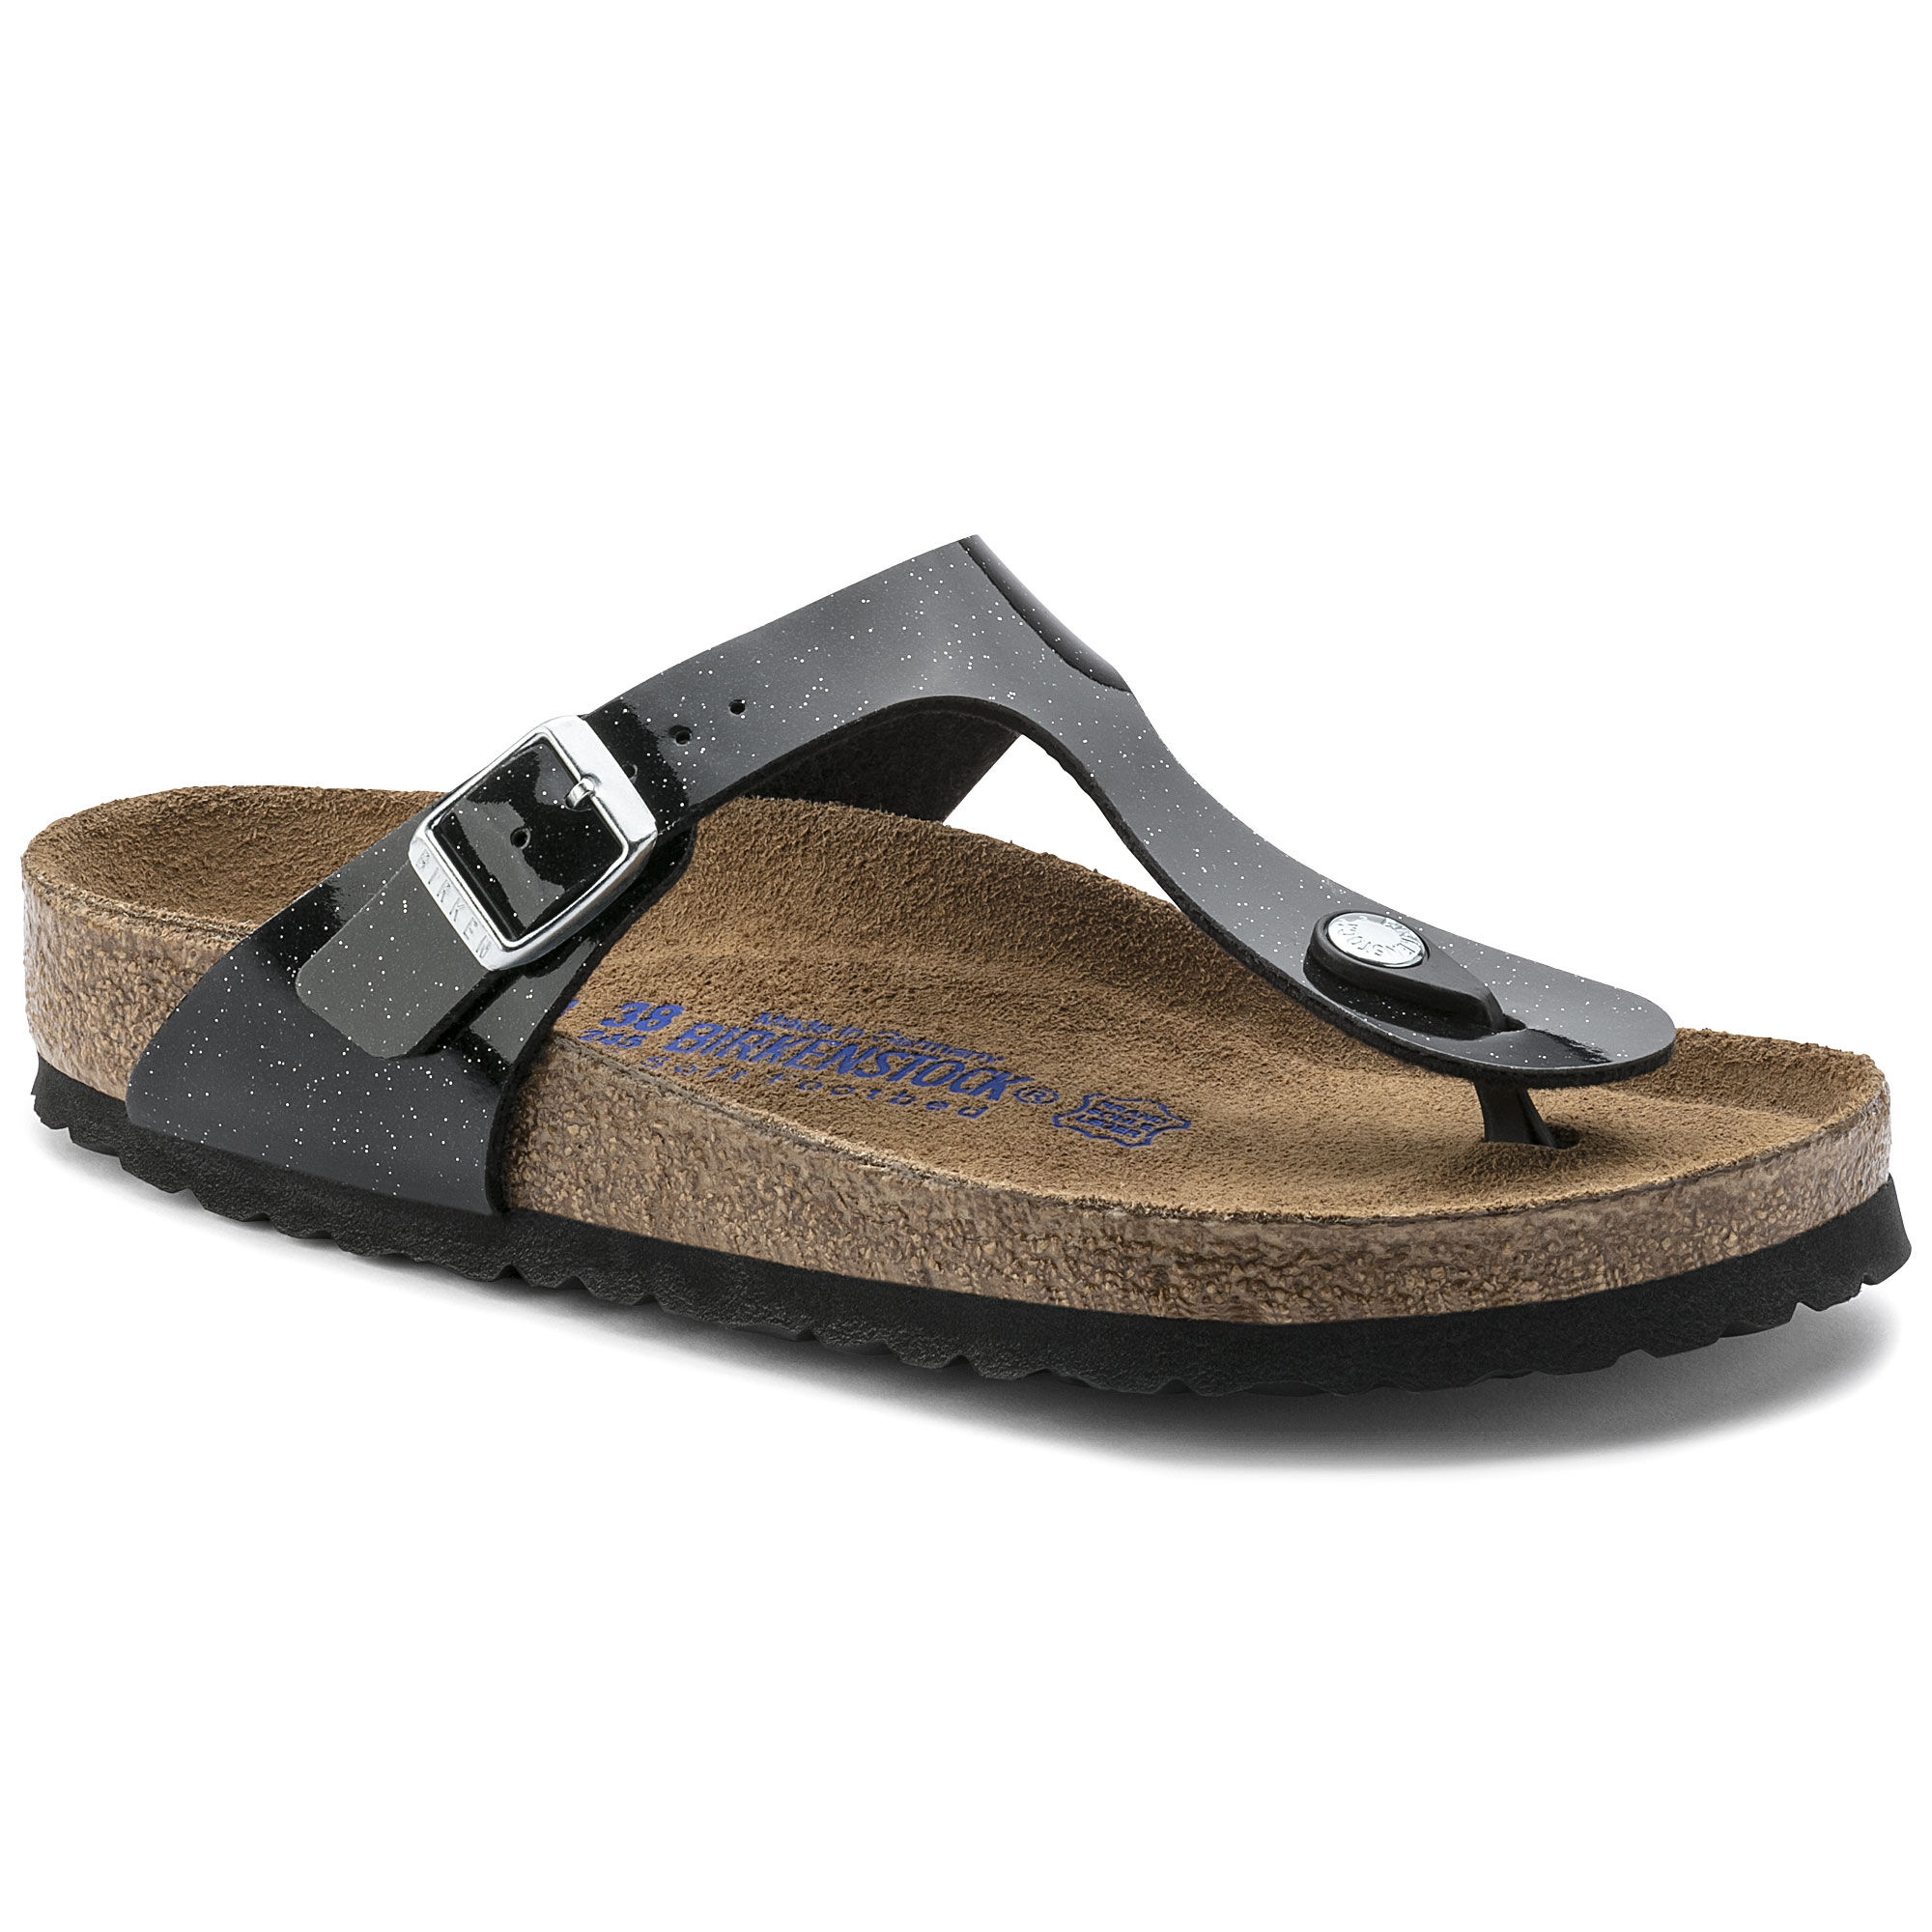 Marques Chaussure femme Birkenstock femme Gizeh Flor W Magic Galaxy Black